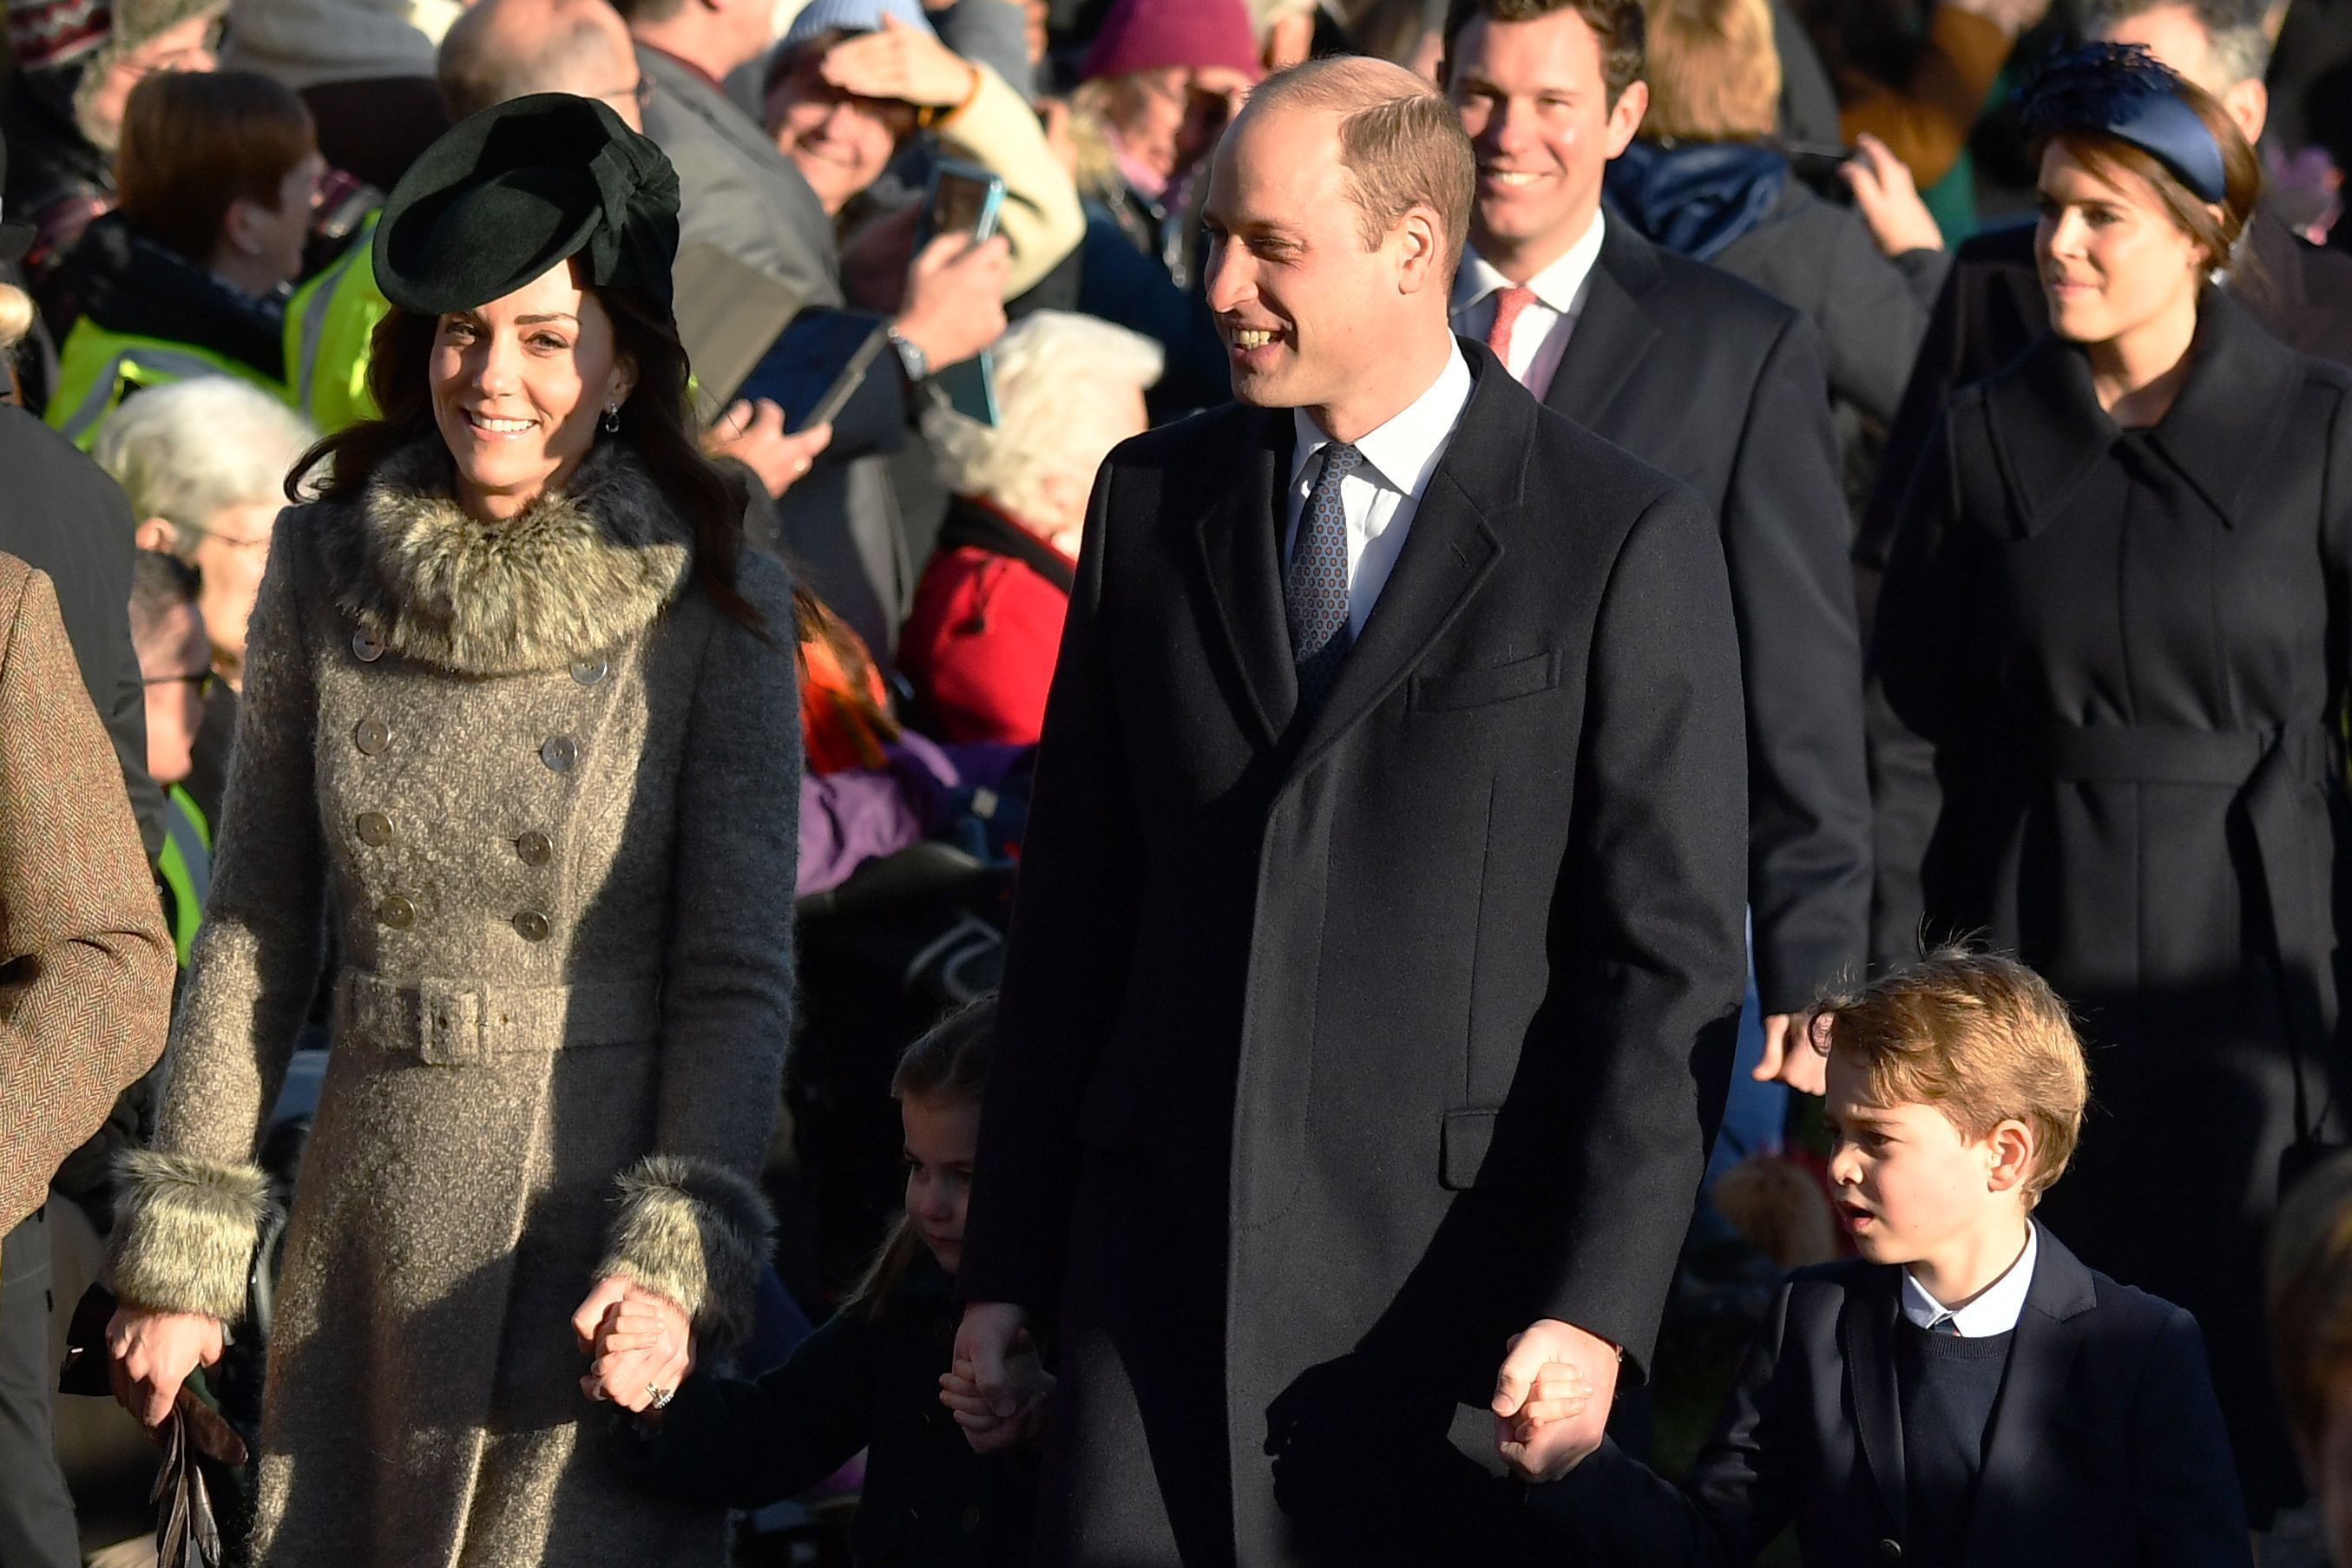 The royal family arrive for Christmas Day service at Sandringham